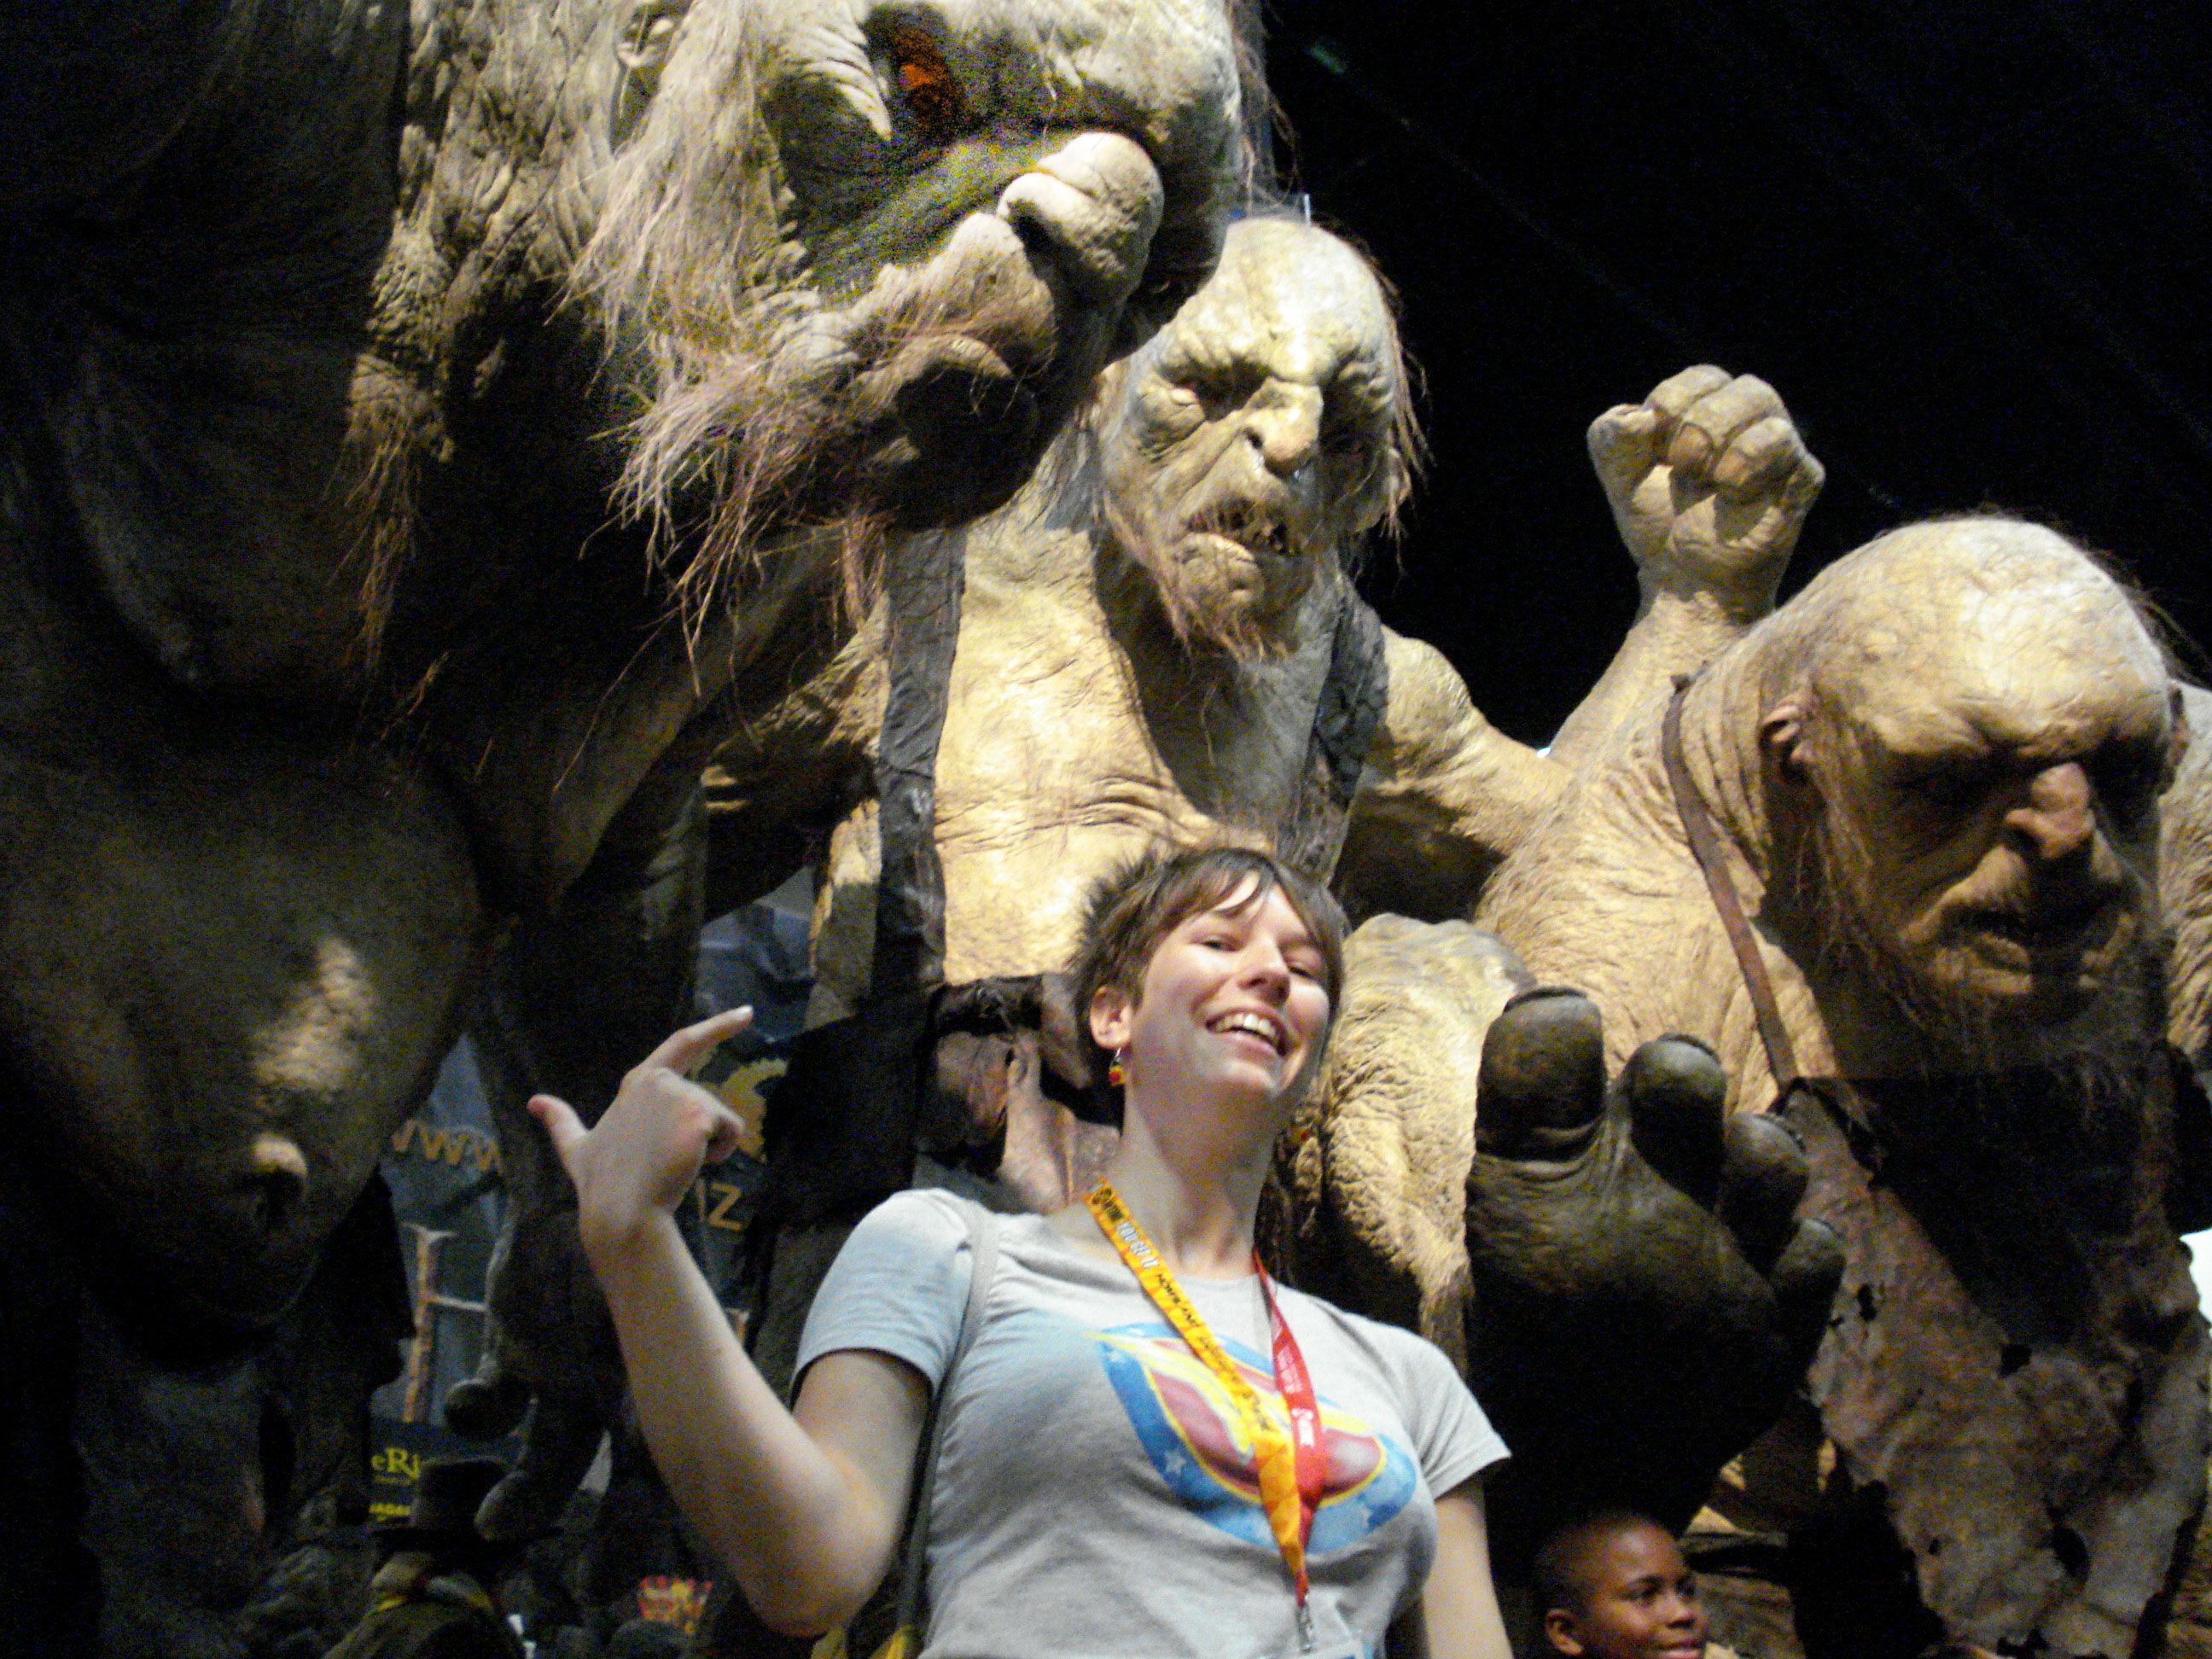 Photo of Lara Donnelly posing for a picture with some life-size monsters at the San Diego Comic Convention.